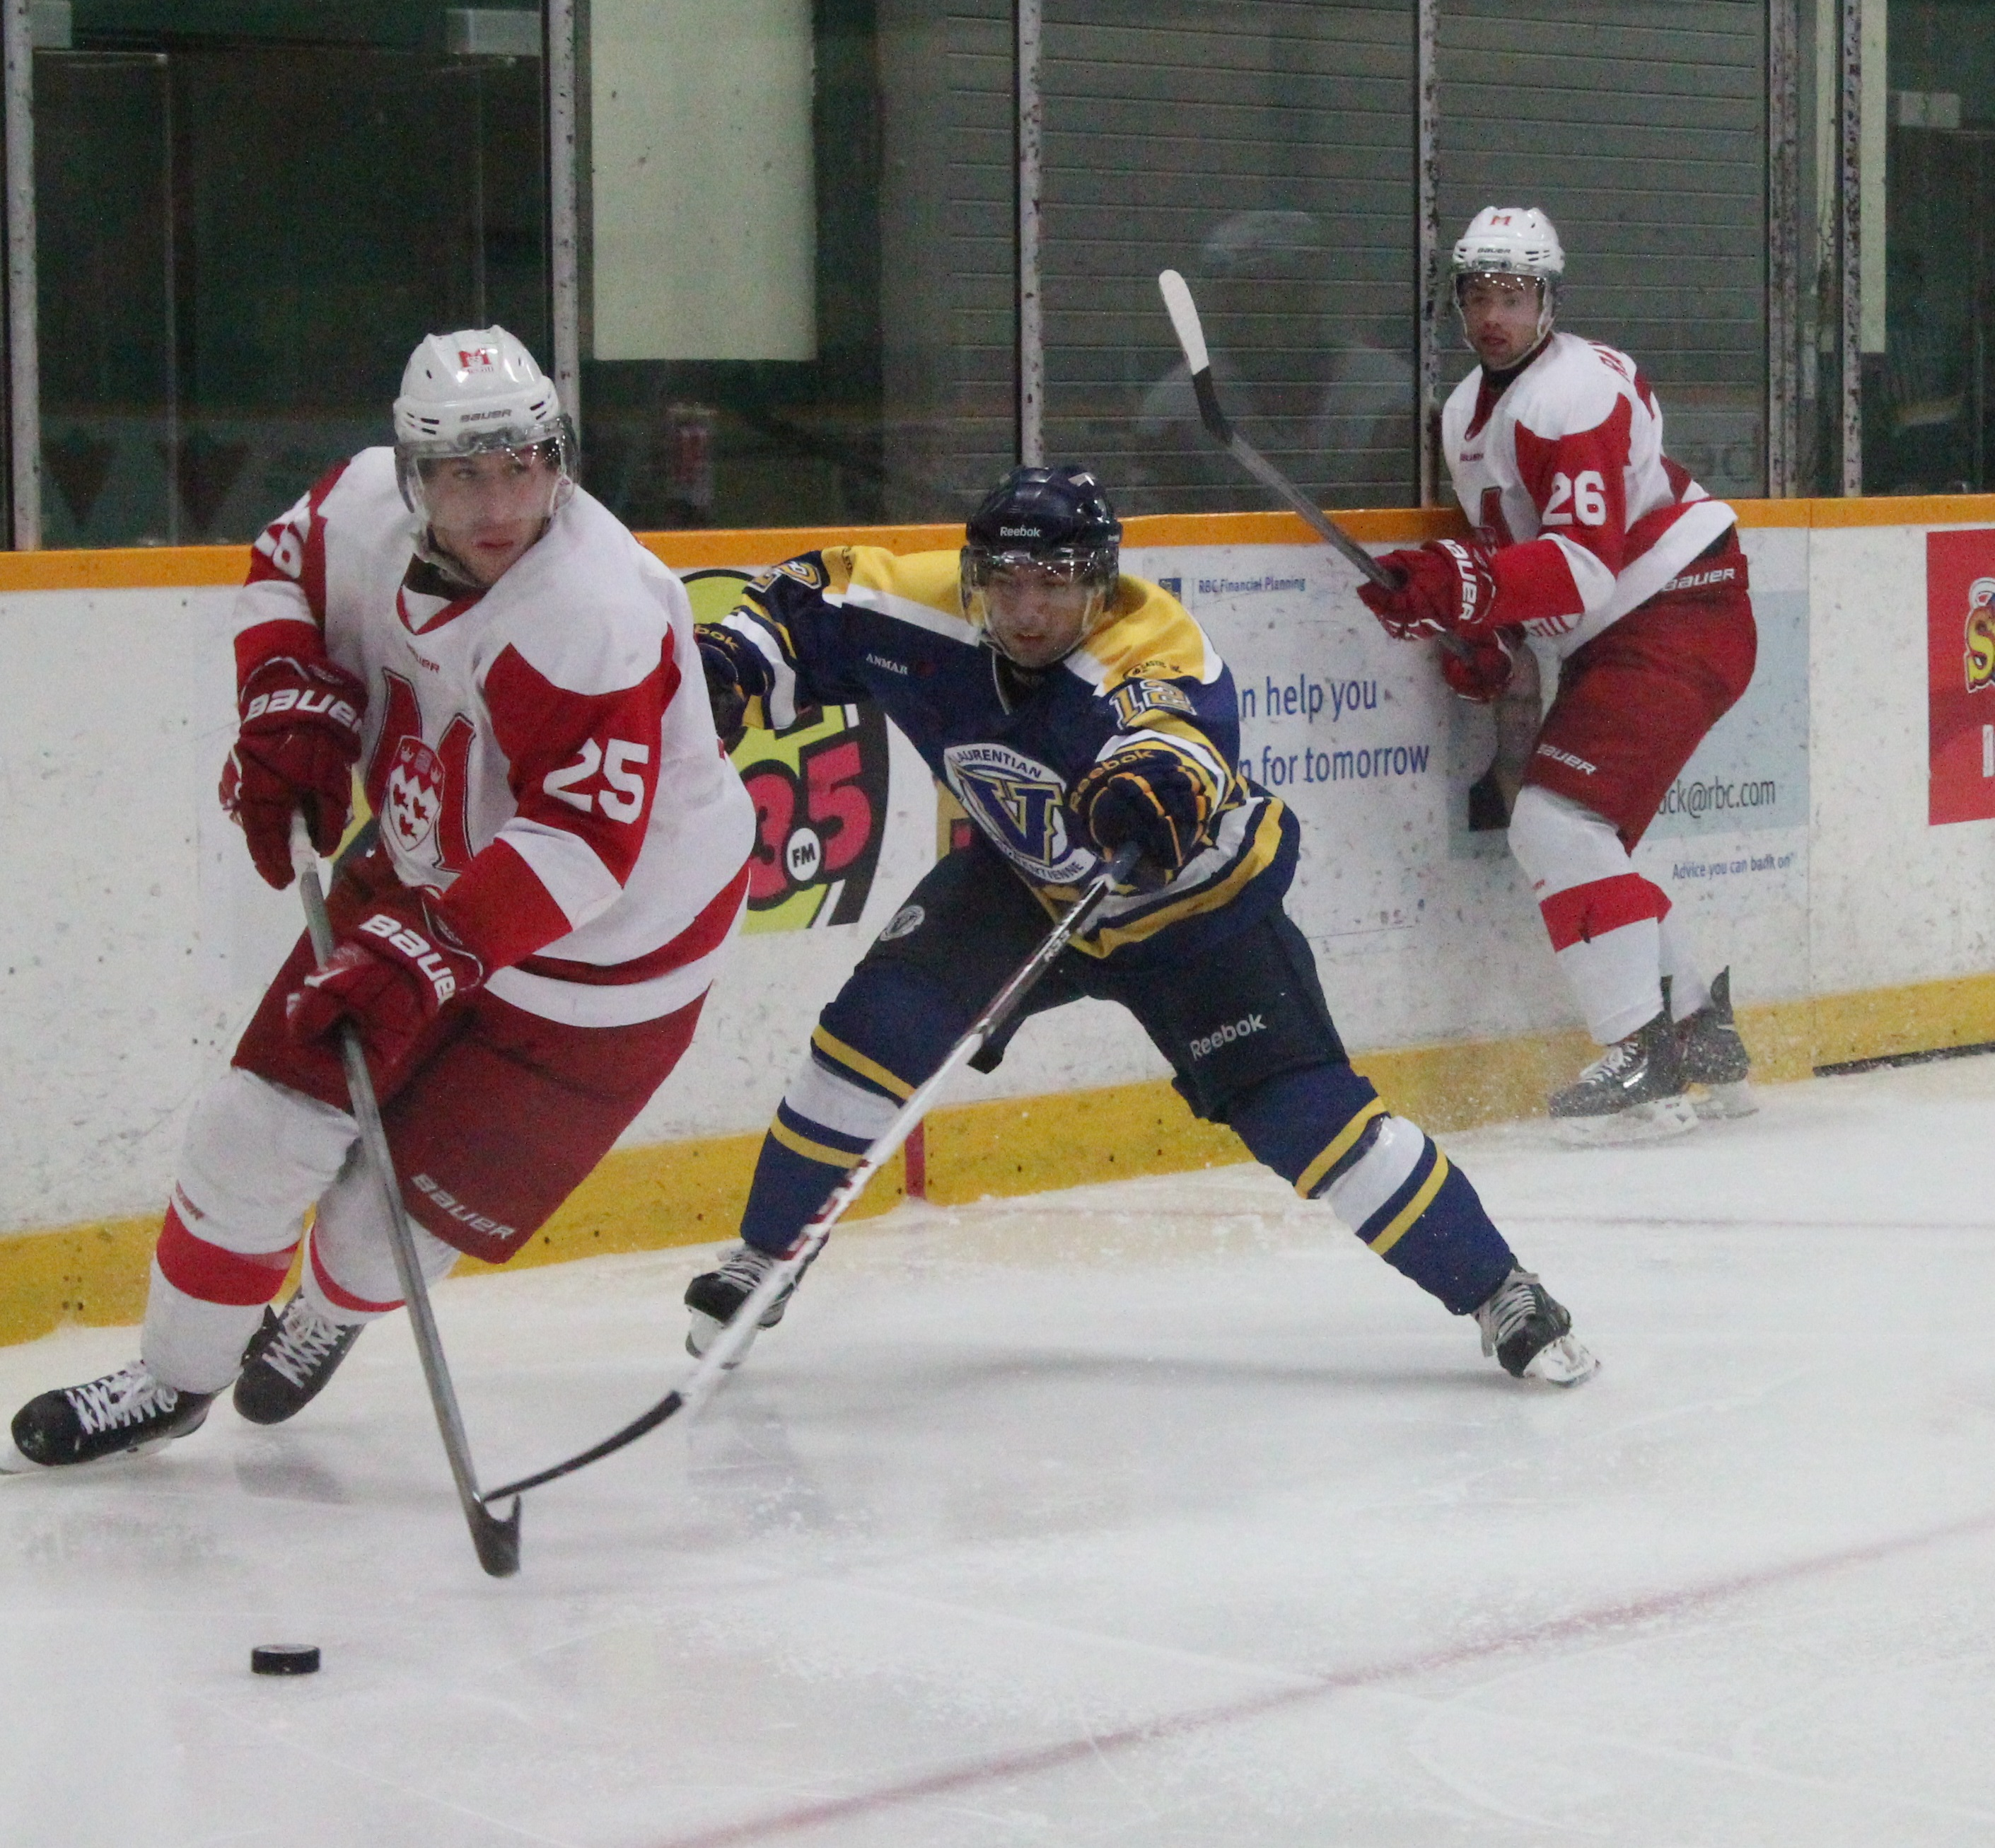 The men's hockey team faces the McGill team on Oct. 25. Photo by Gabriel Rodrigues.